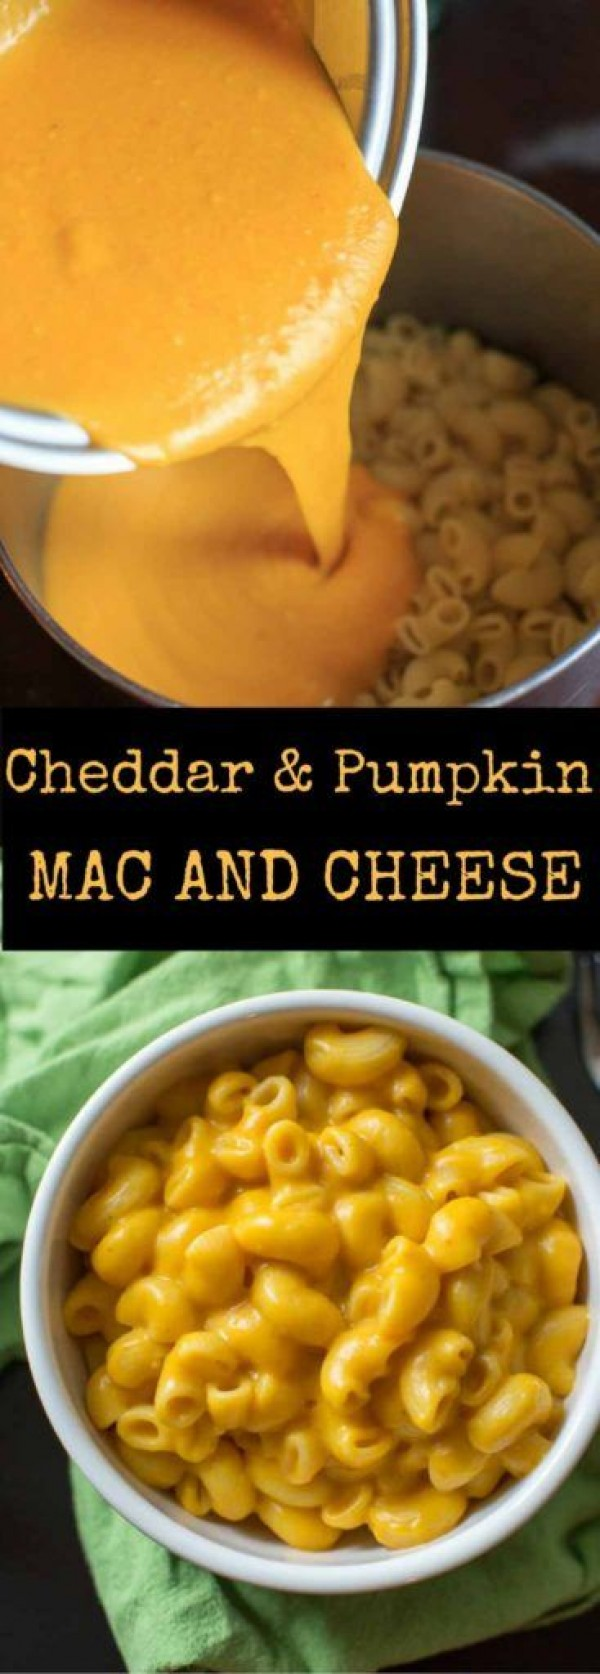 Get the recipe Cheddar and Pumpkin Mac and Cheese @recipes_to_go